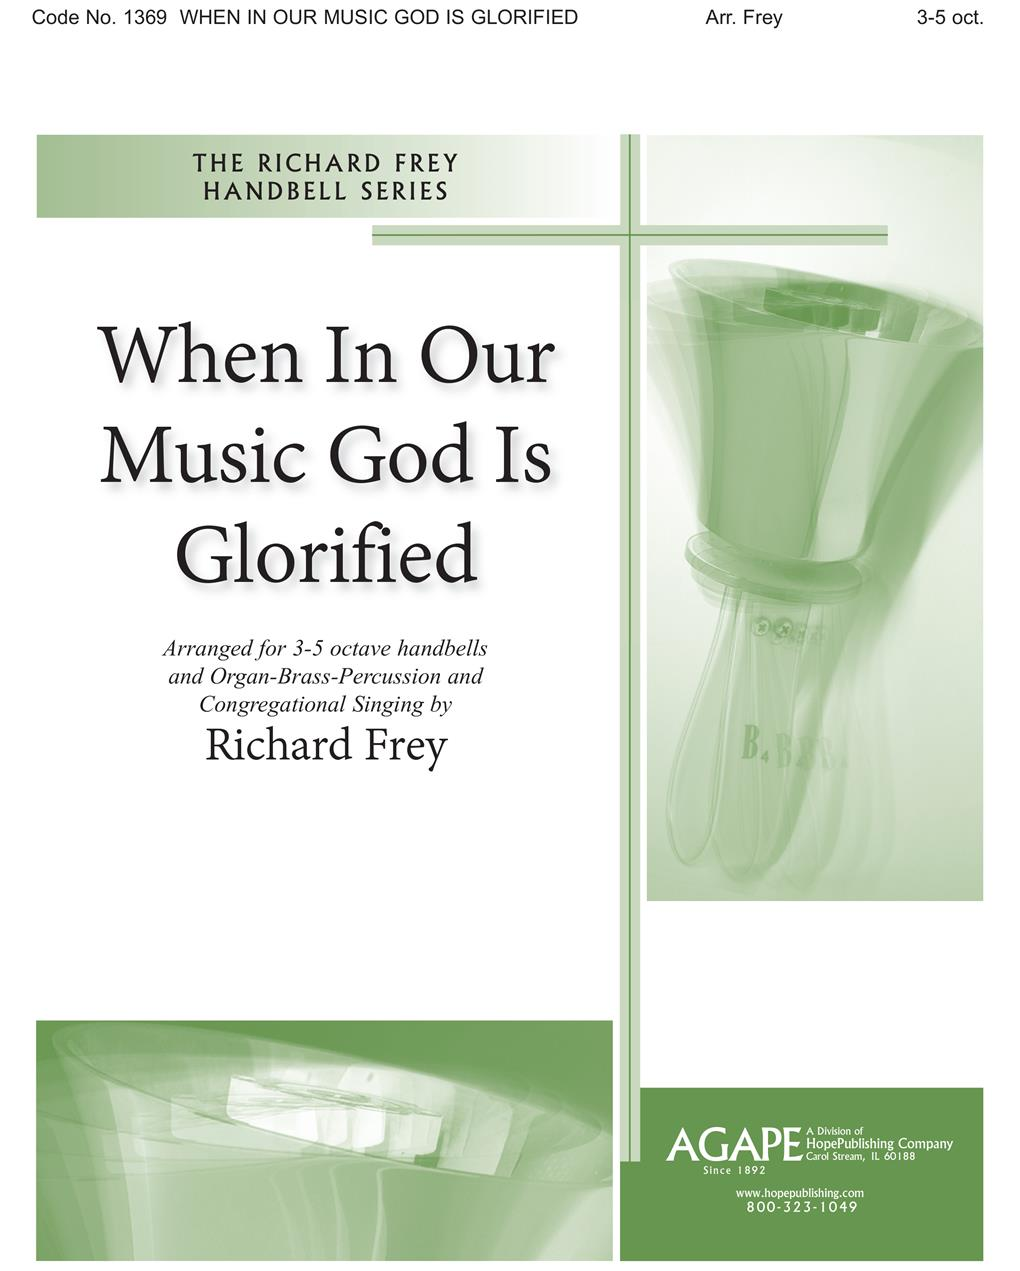 When in Our Music God Is Glorified - 3-5 Octave Cover Image